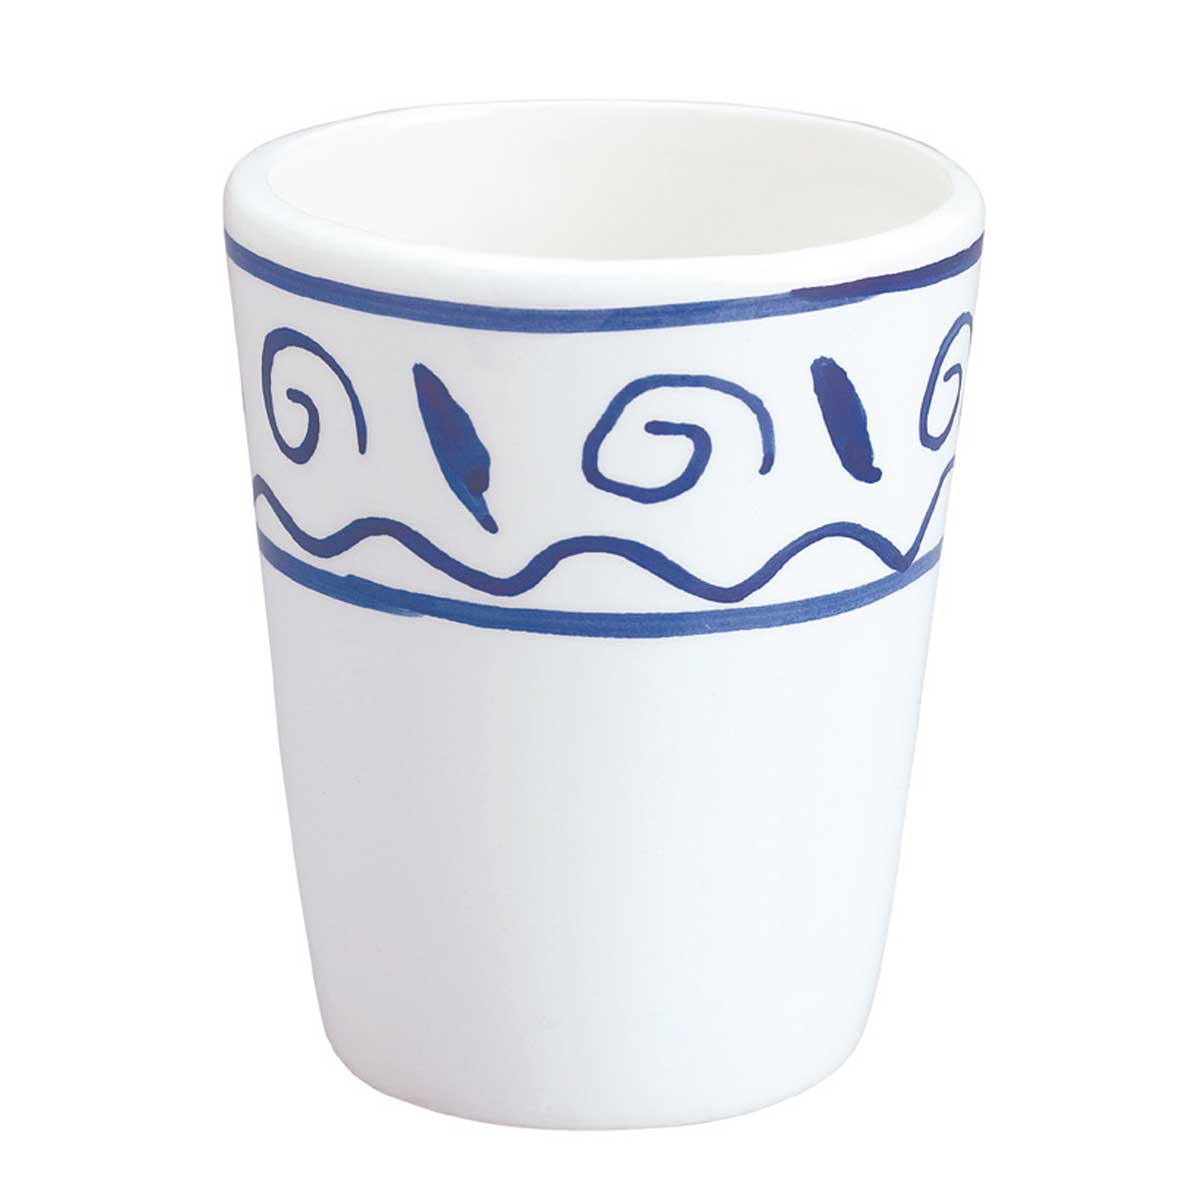 Bathroom Cup Tumbler White & Blue Nepture Ceramic | Renovator's Supply by The Renovator's Supply